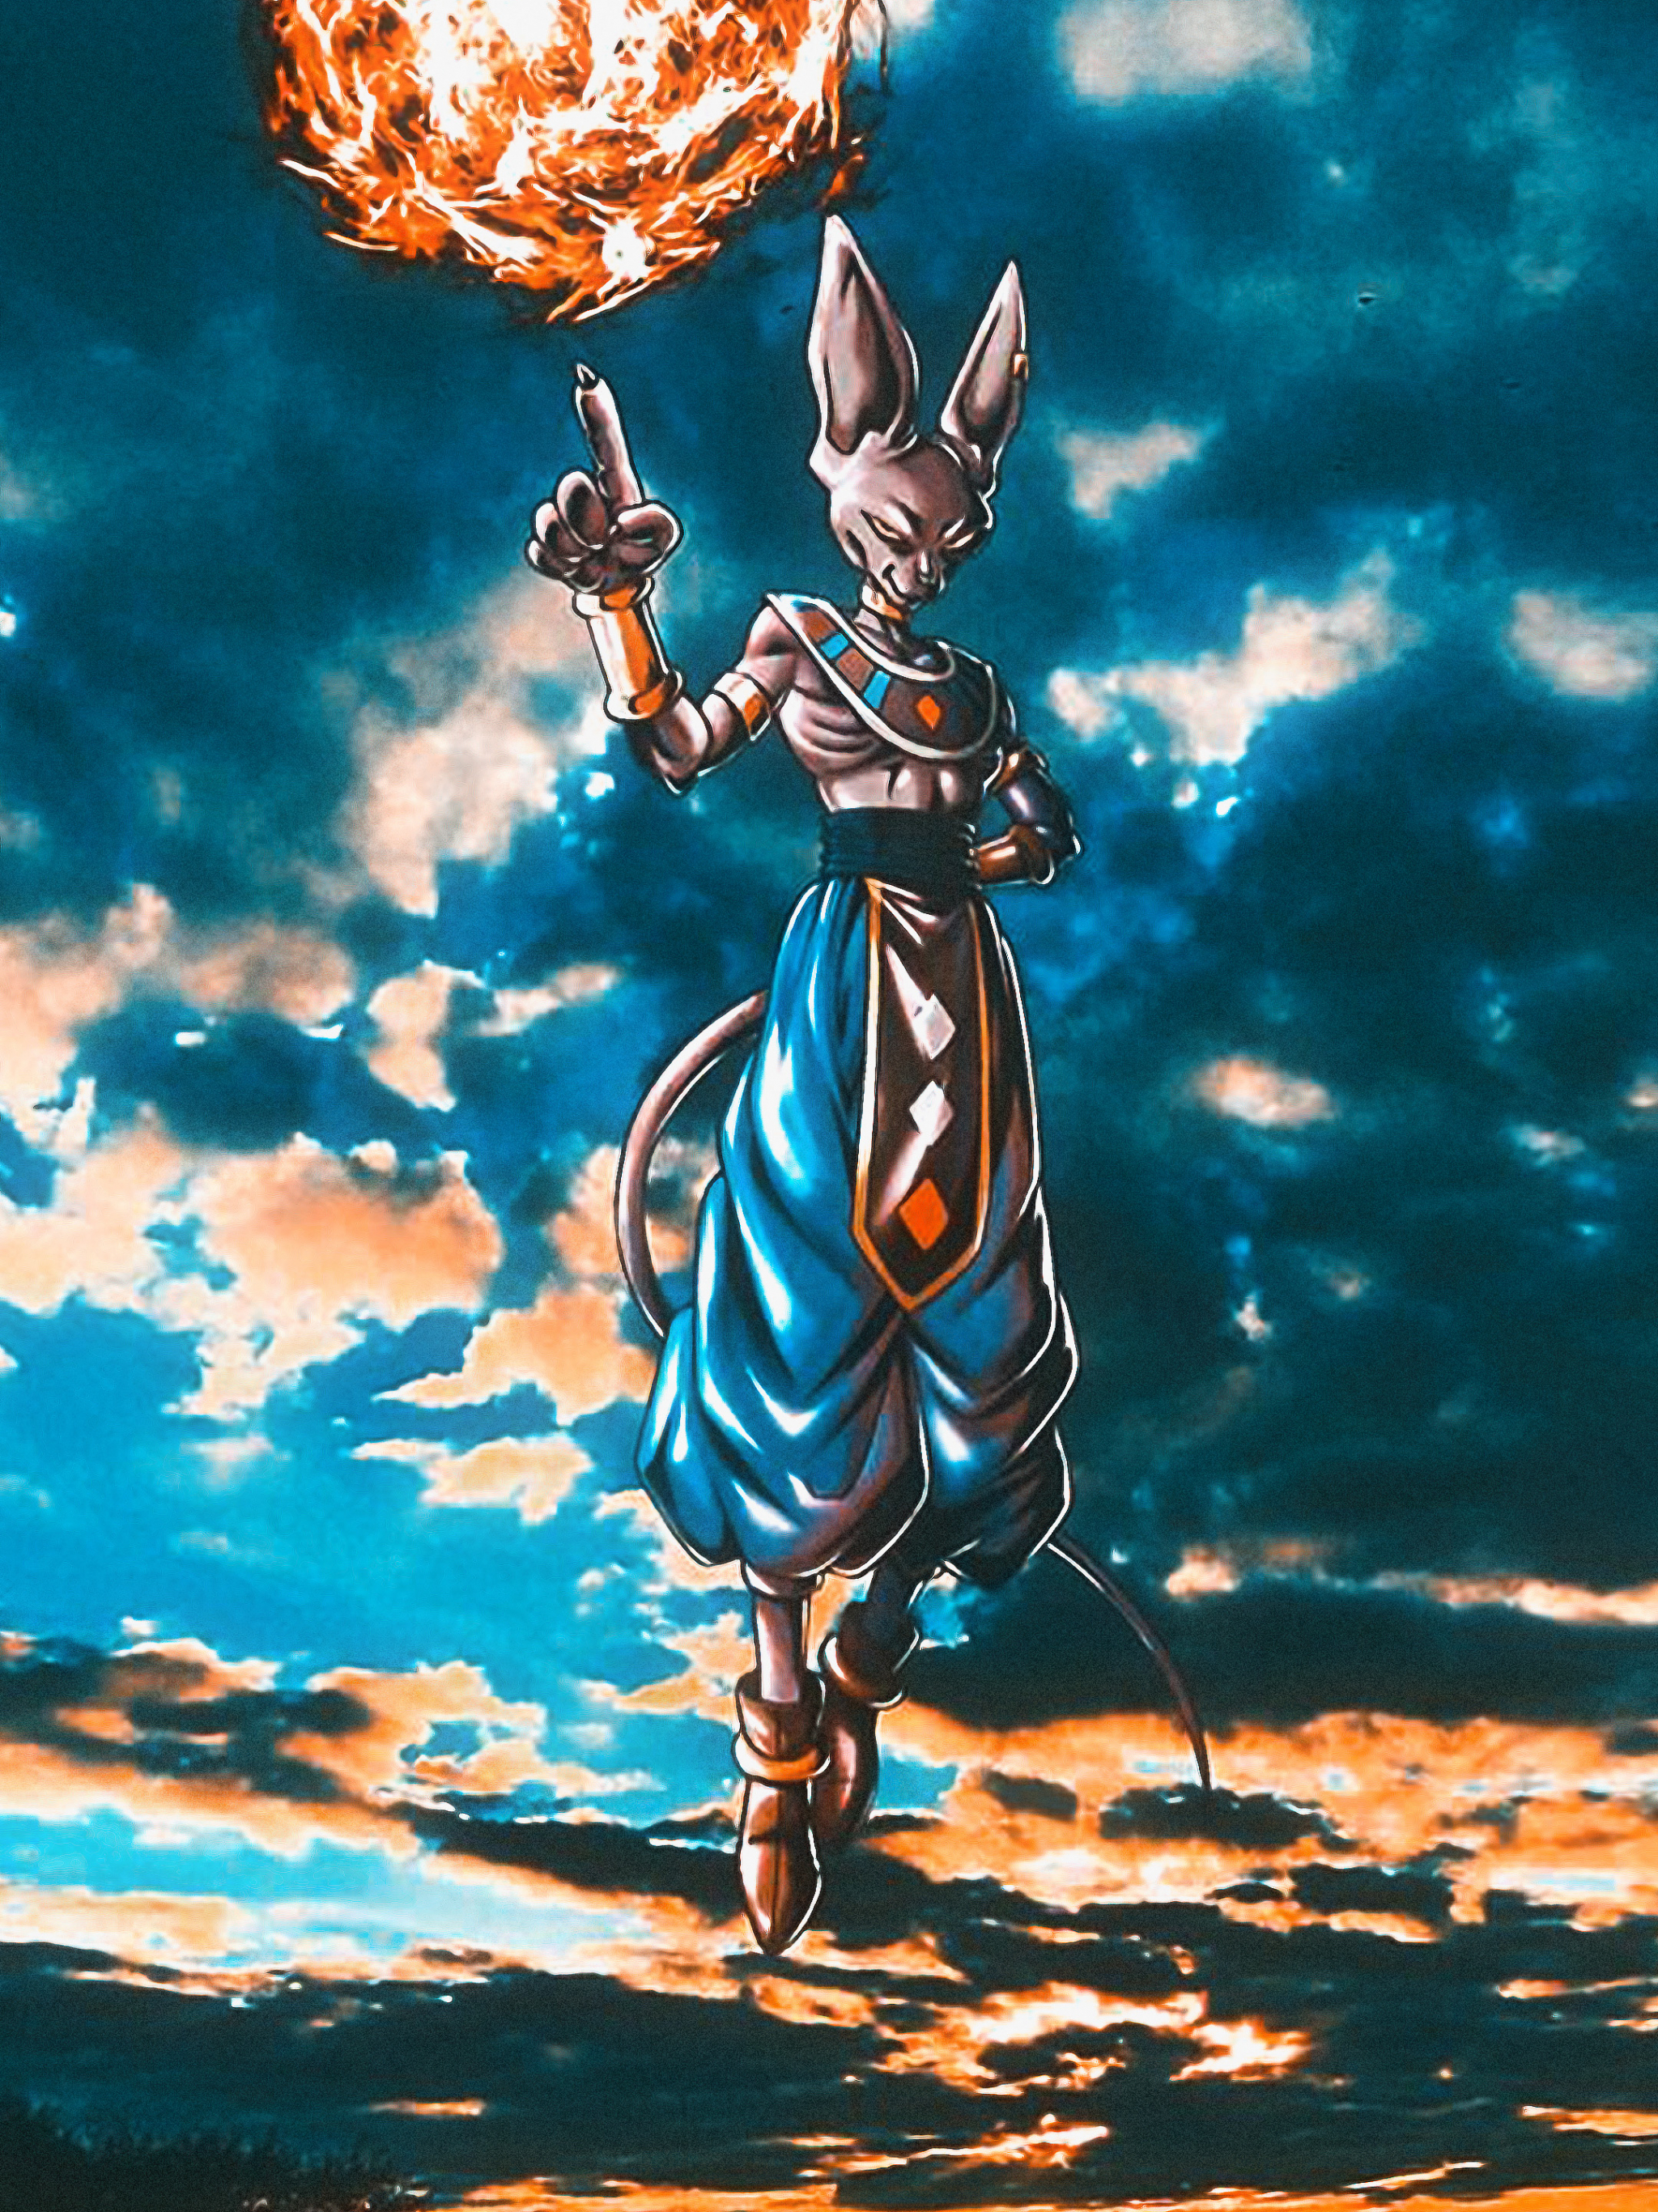 Free Download 20 4k Wallpapers Of Dbz And Super For Phones Syanart Station 2160x3840 For Your Desktop Mobile Tablet Explore 41 Dragon Ball Super 4k Wallpapers Dragon Ball Super